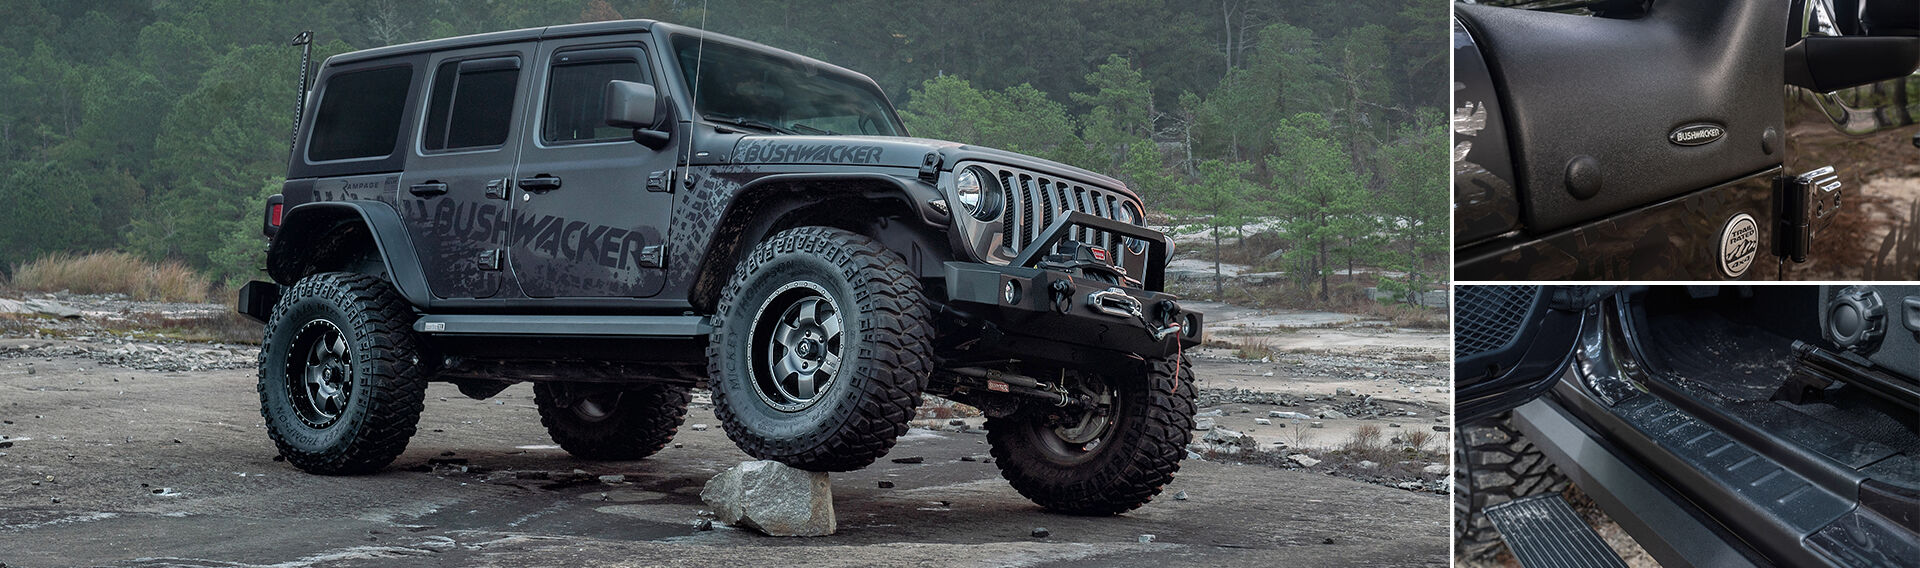 Gear Up Flat Style Fender Flares and Trail Armor SHOP NOW